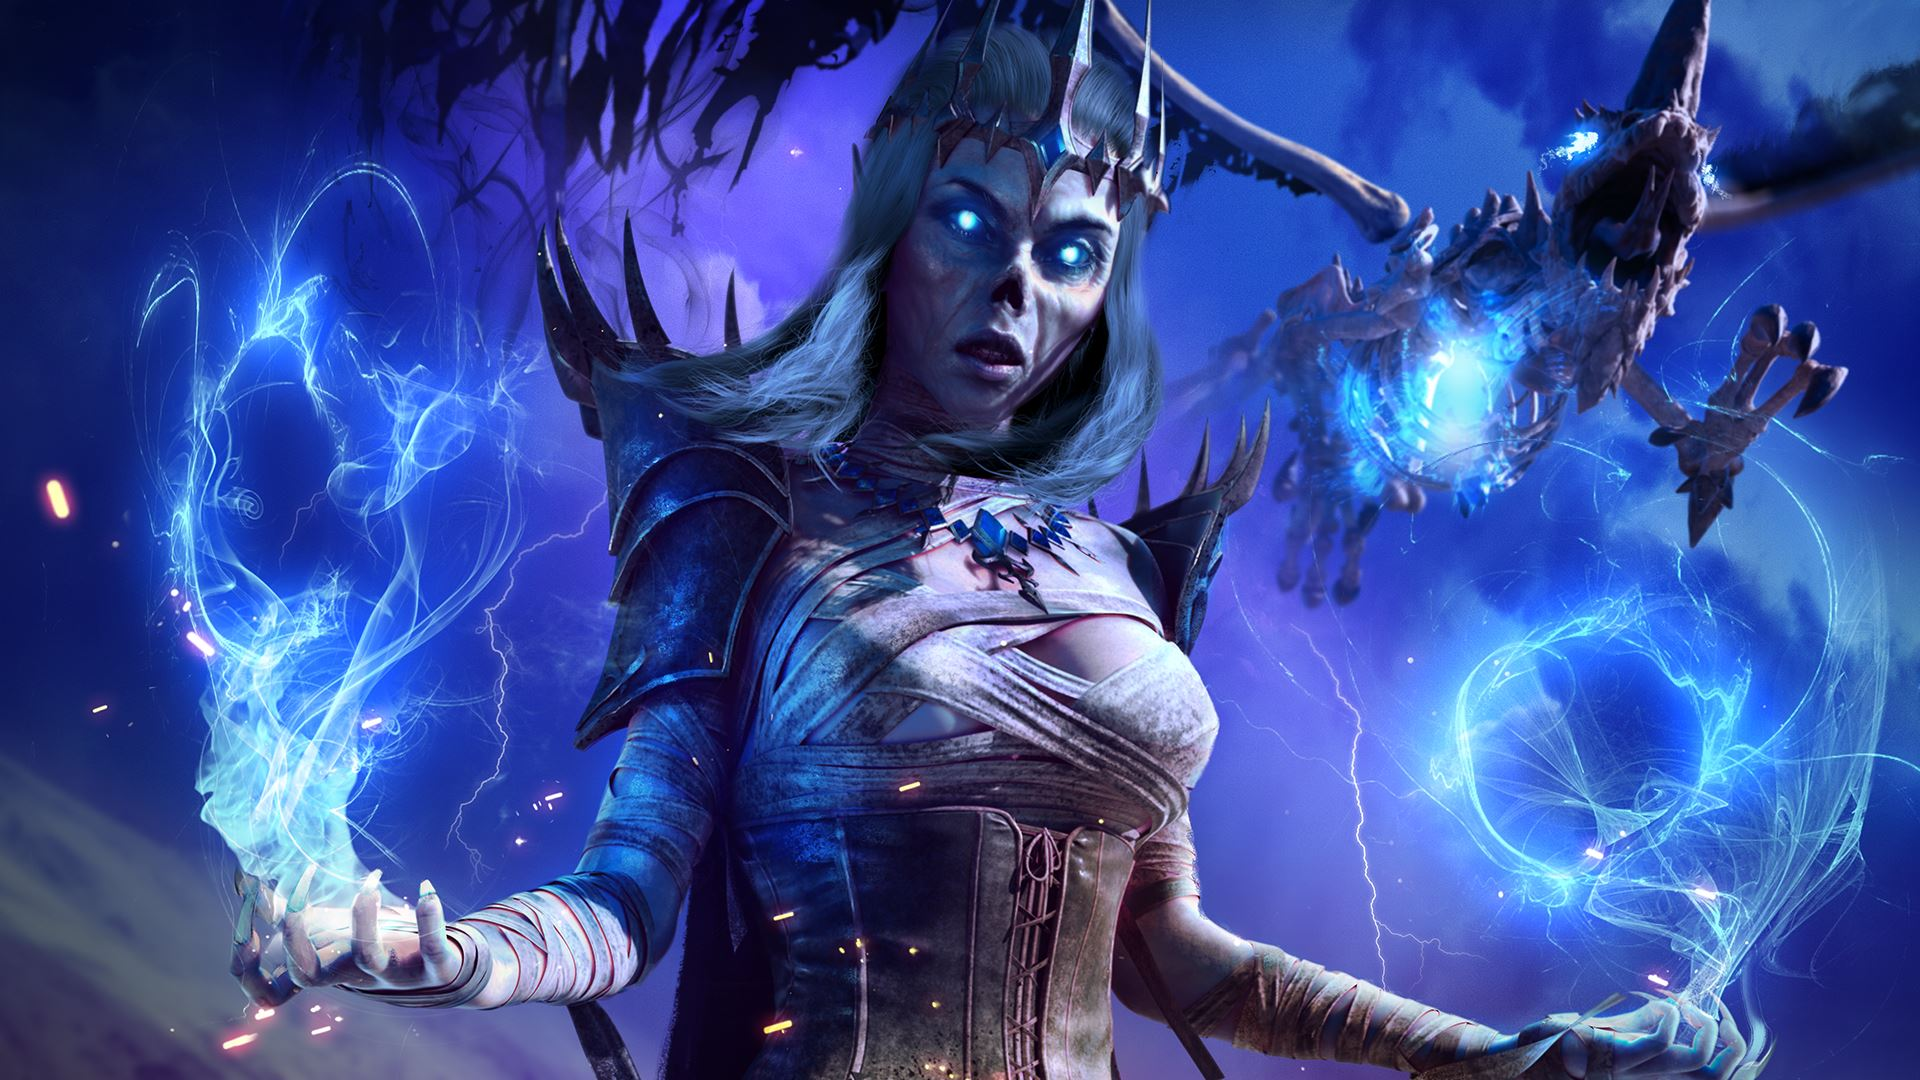 Neverwinter: Rise of Tiamat Q/A stream with the executive producer this Thursday 6/11